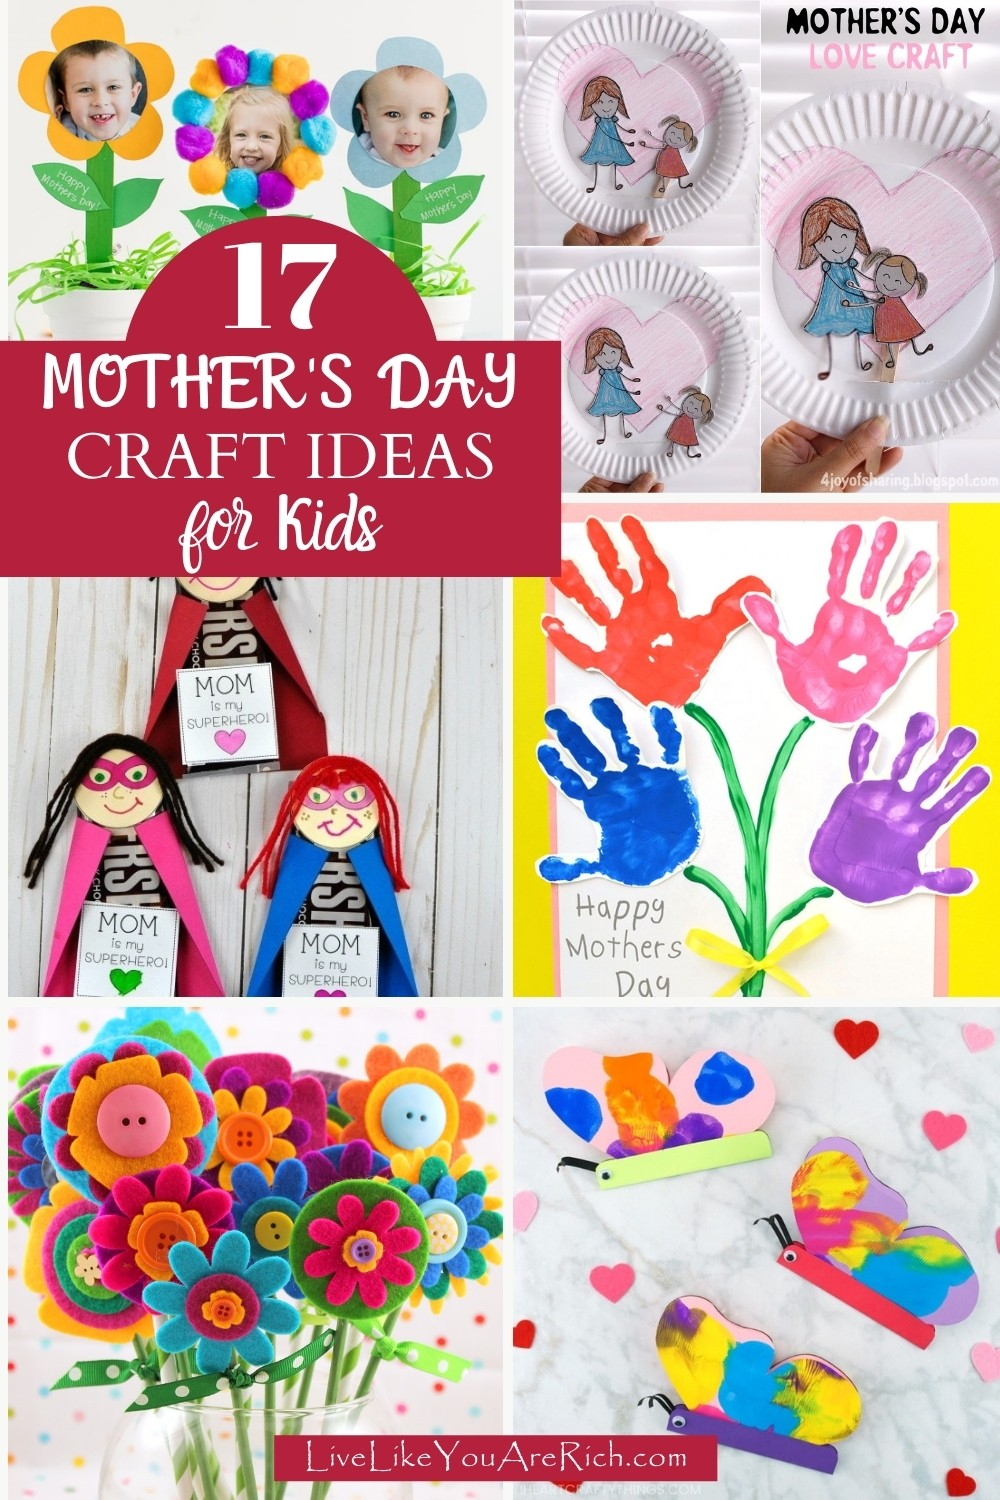 17 Mother's Day Craft Ideas for Kids